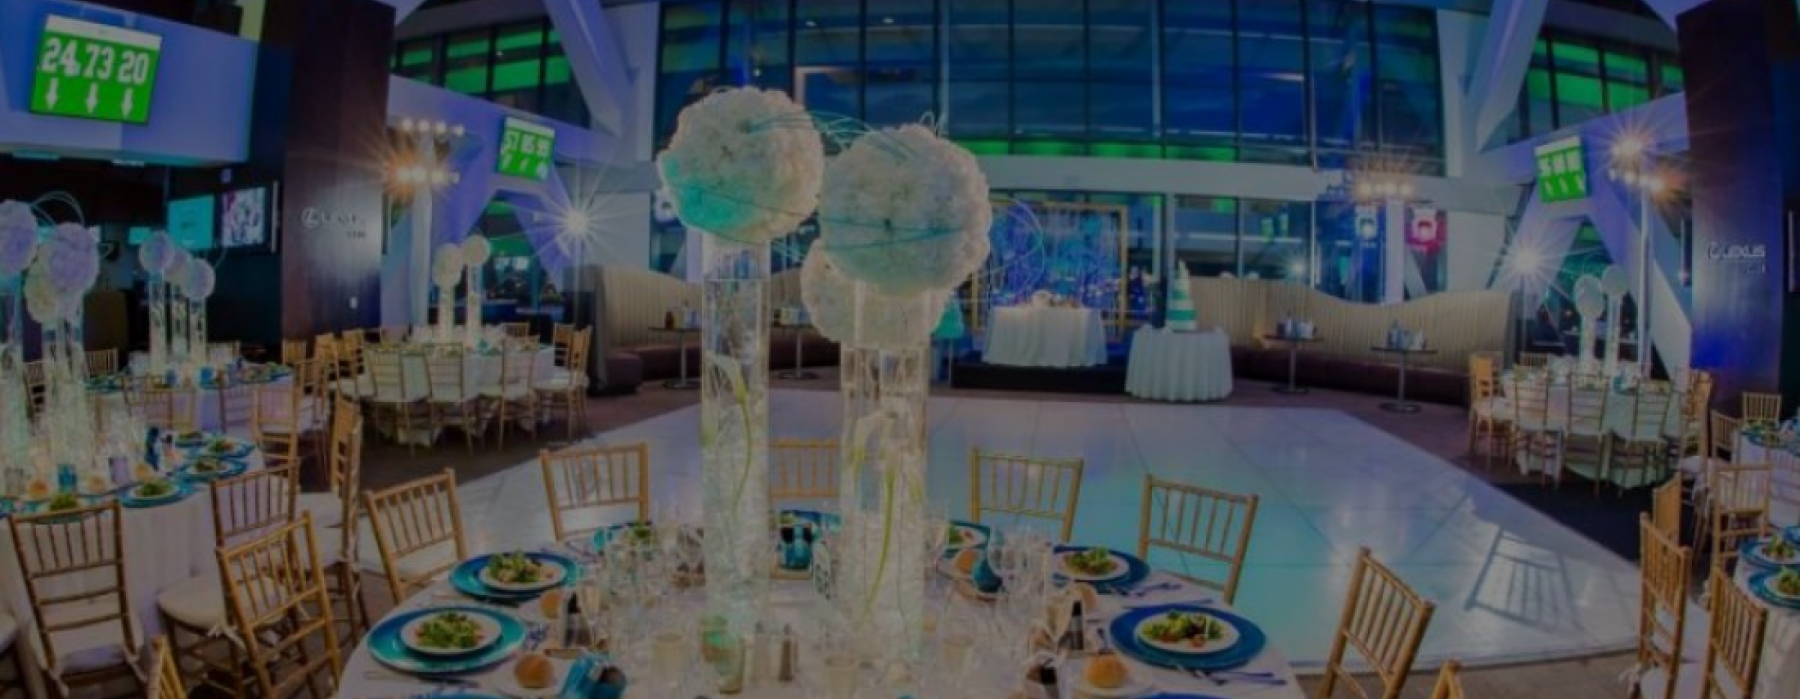 Arena Event Space and Stadium Venues For Events